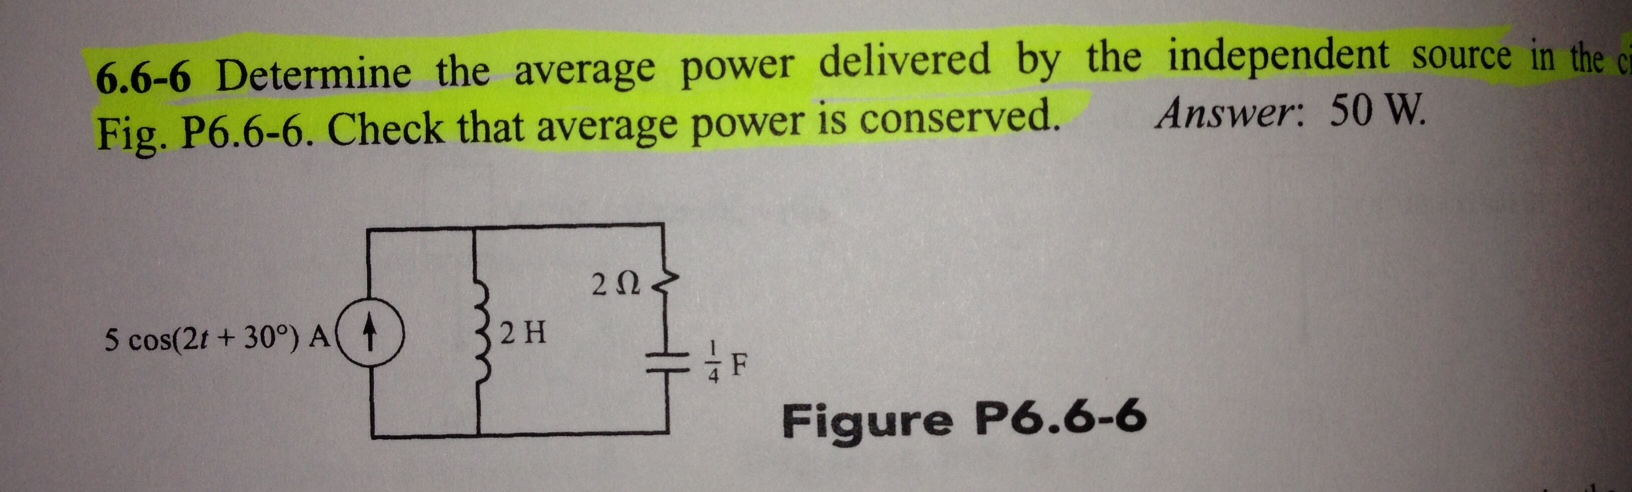 Determine the average power delivered by the indep